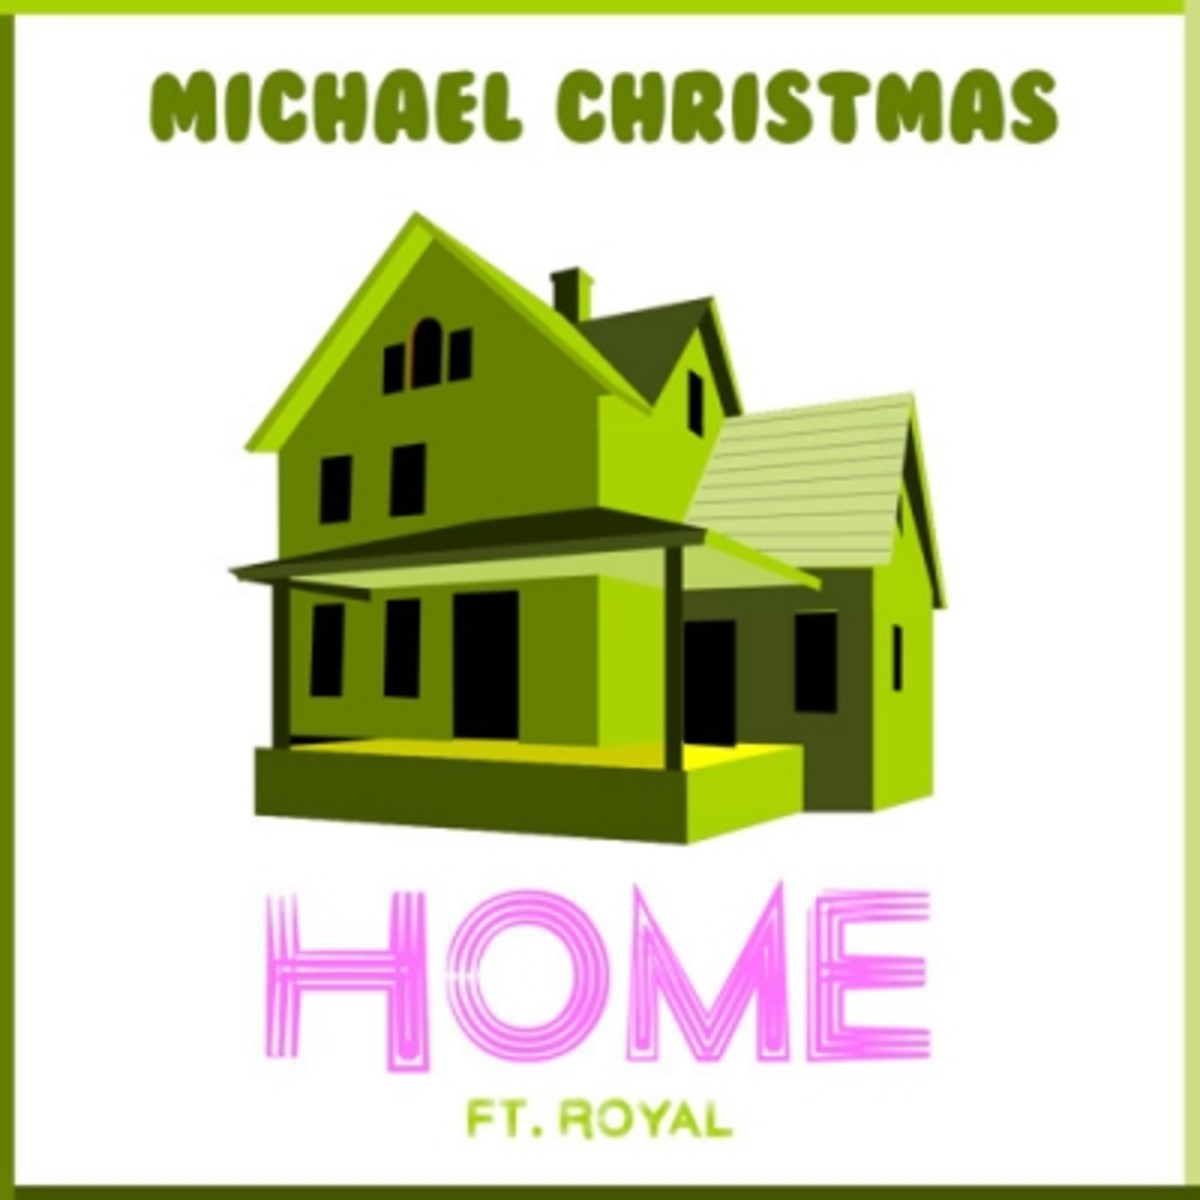 michael-christmas-home.jpg